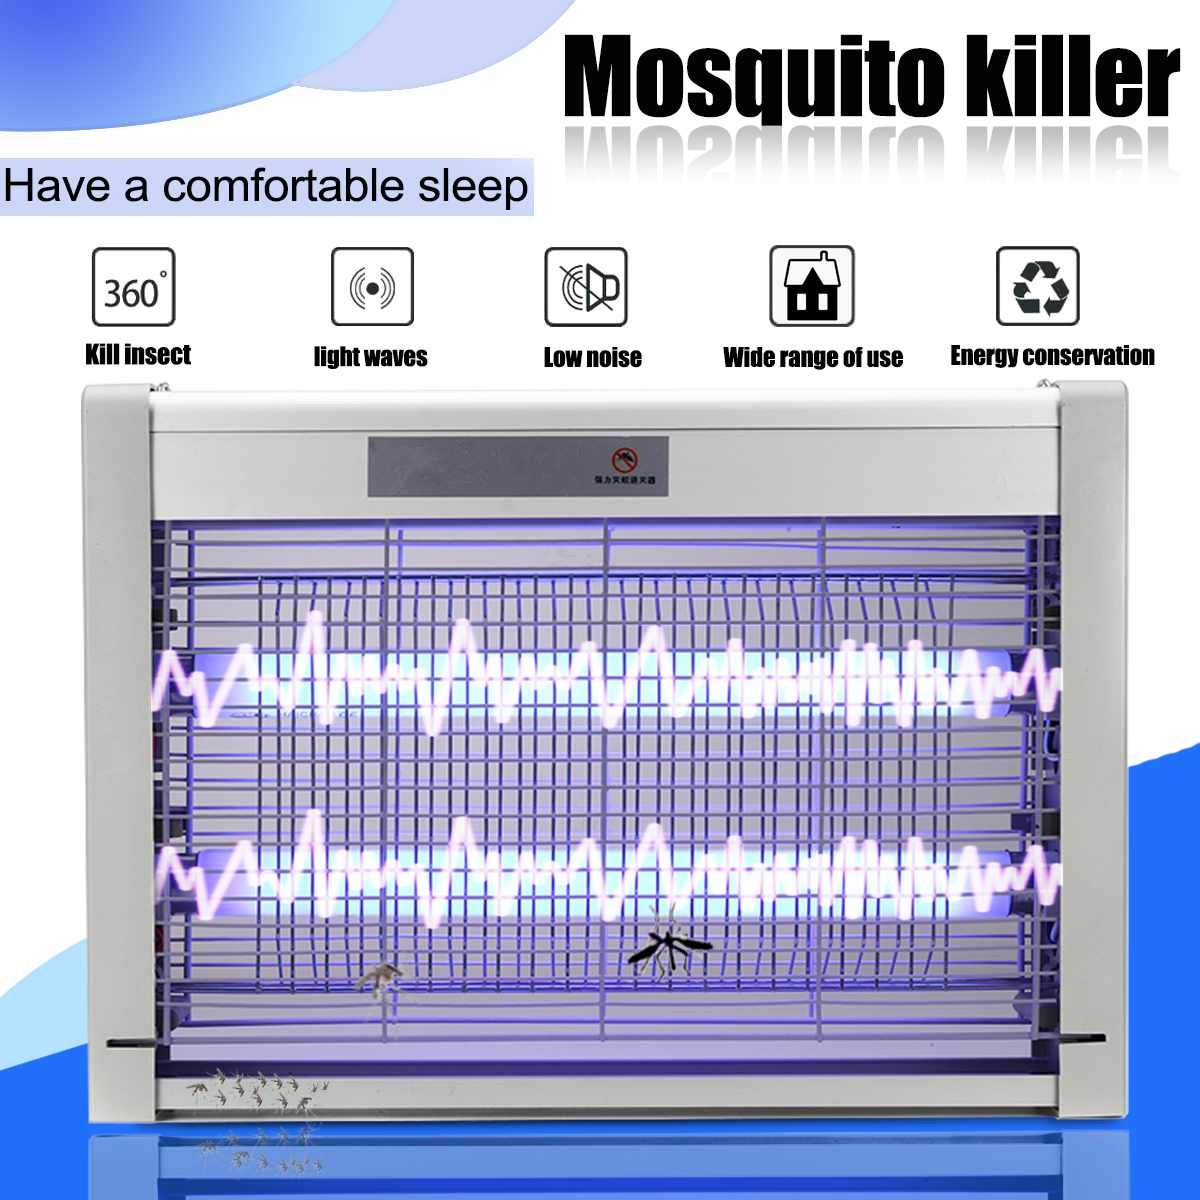 220V LED Mosquito Killer Traps Lamp Night Light Electric Shock Insect Bug Zapper Trap Anti Fly Repeller Indoor Pest Traps Lights